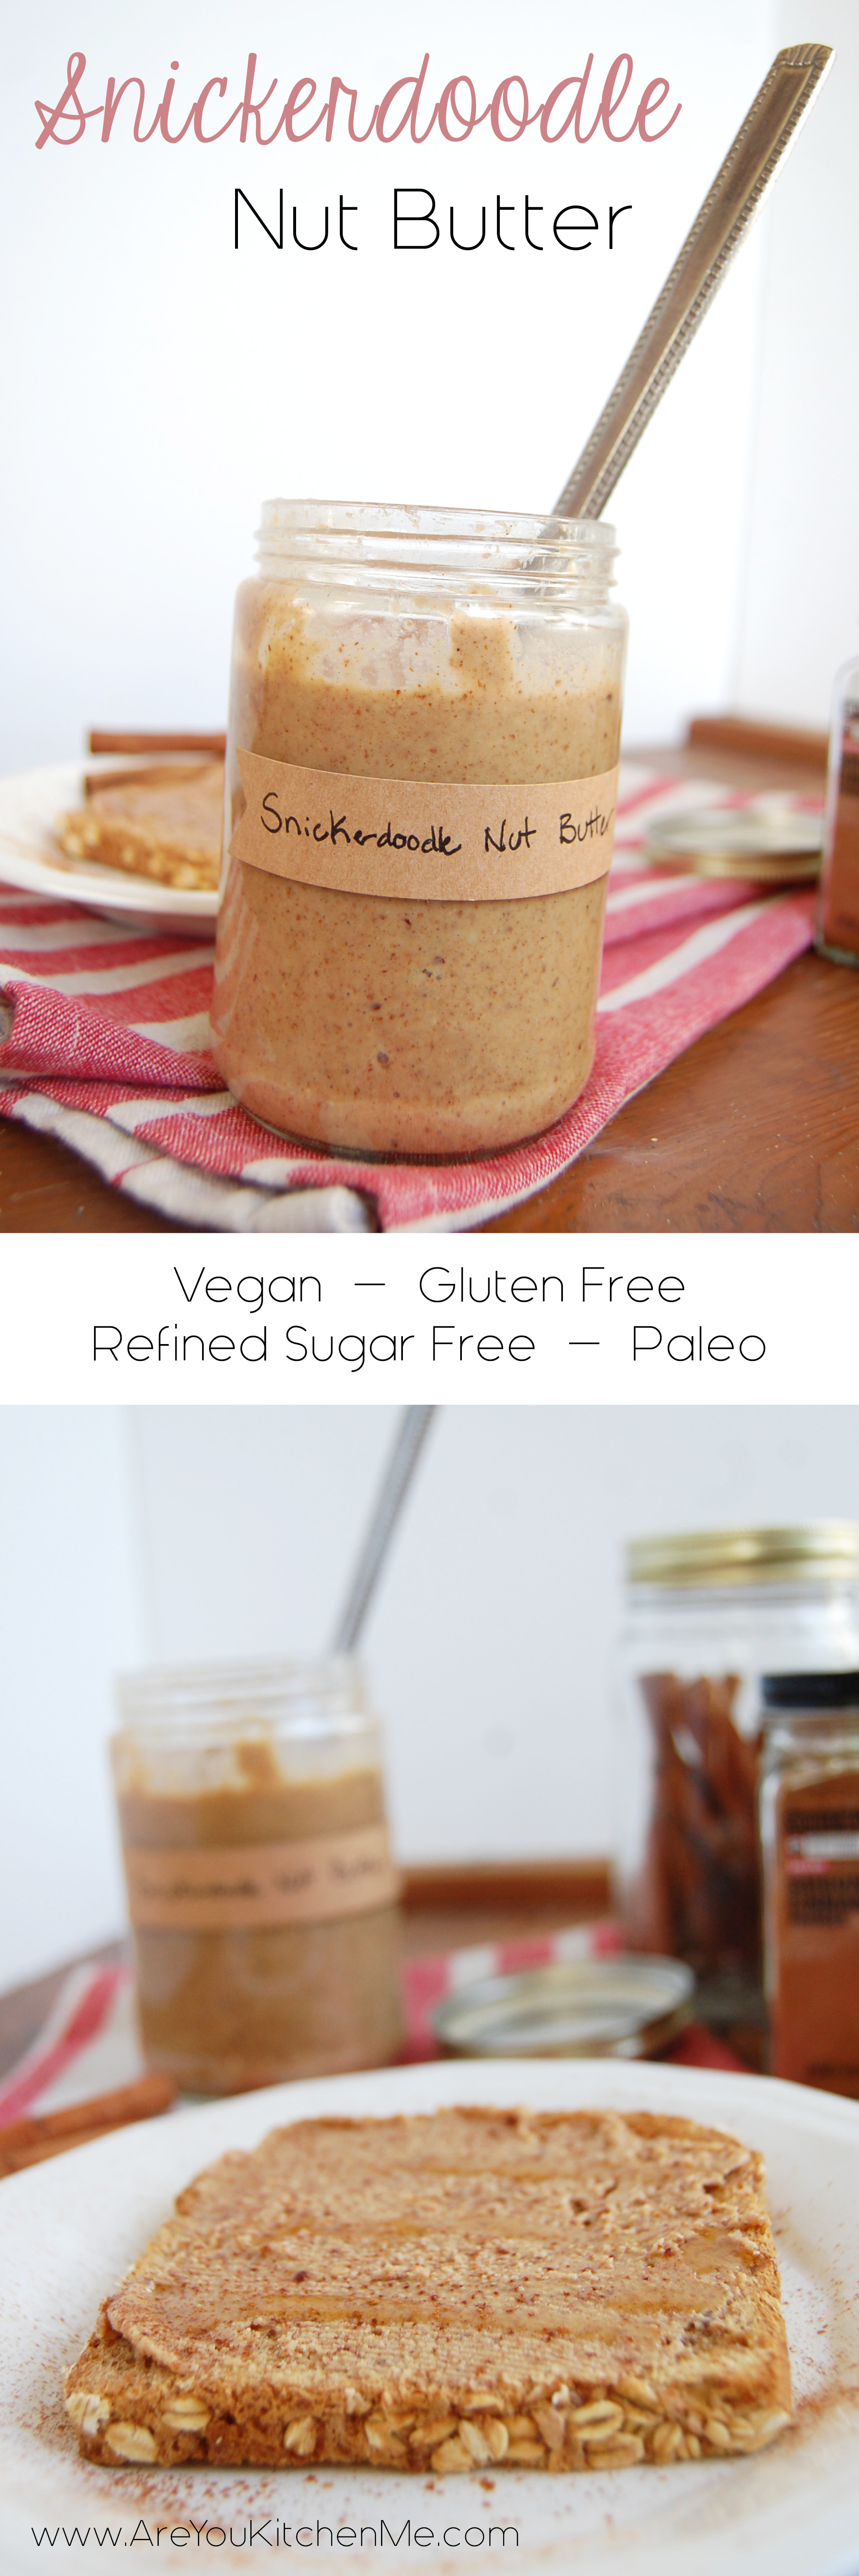 Snickerdoodle Nut Butter | AreYouKitchenMe.com